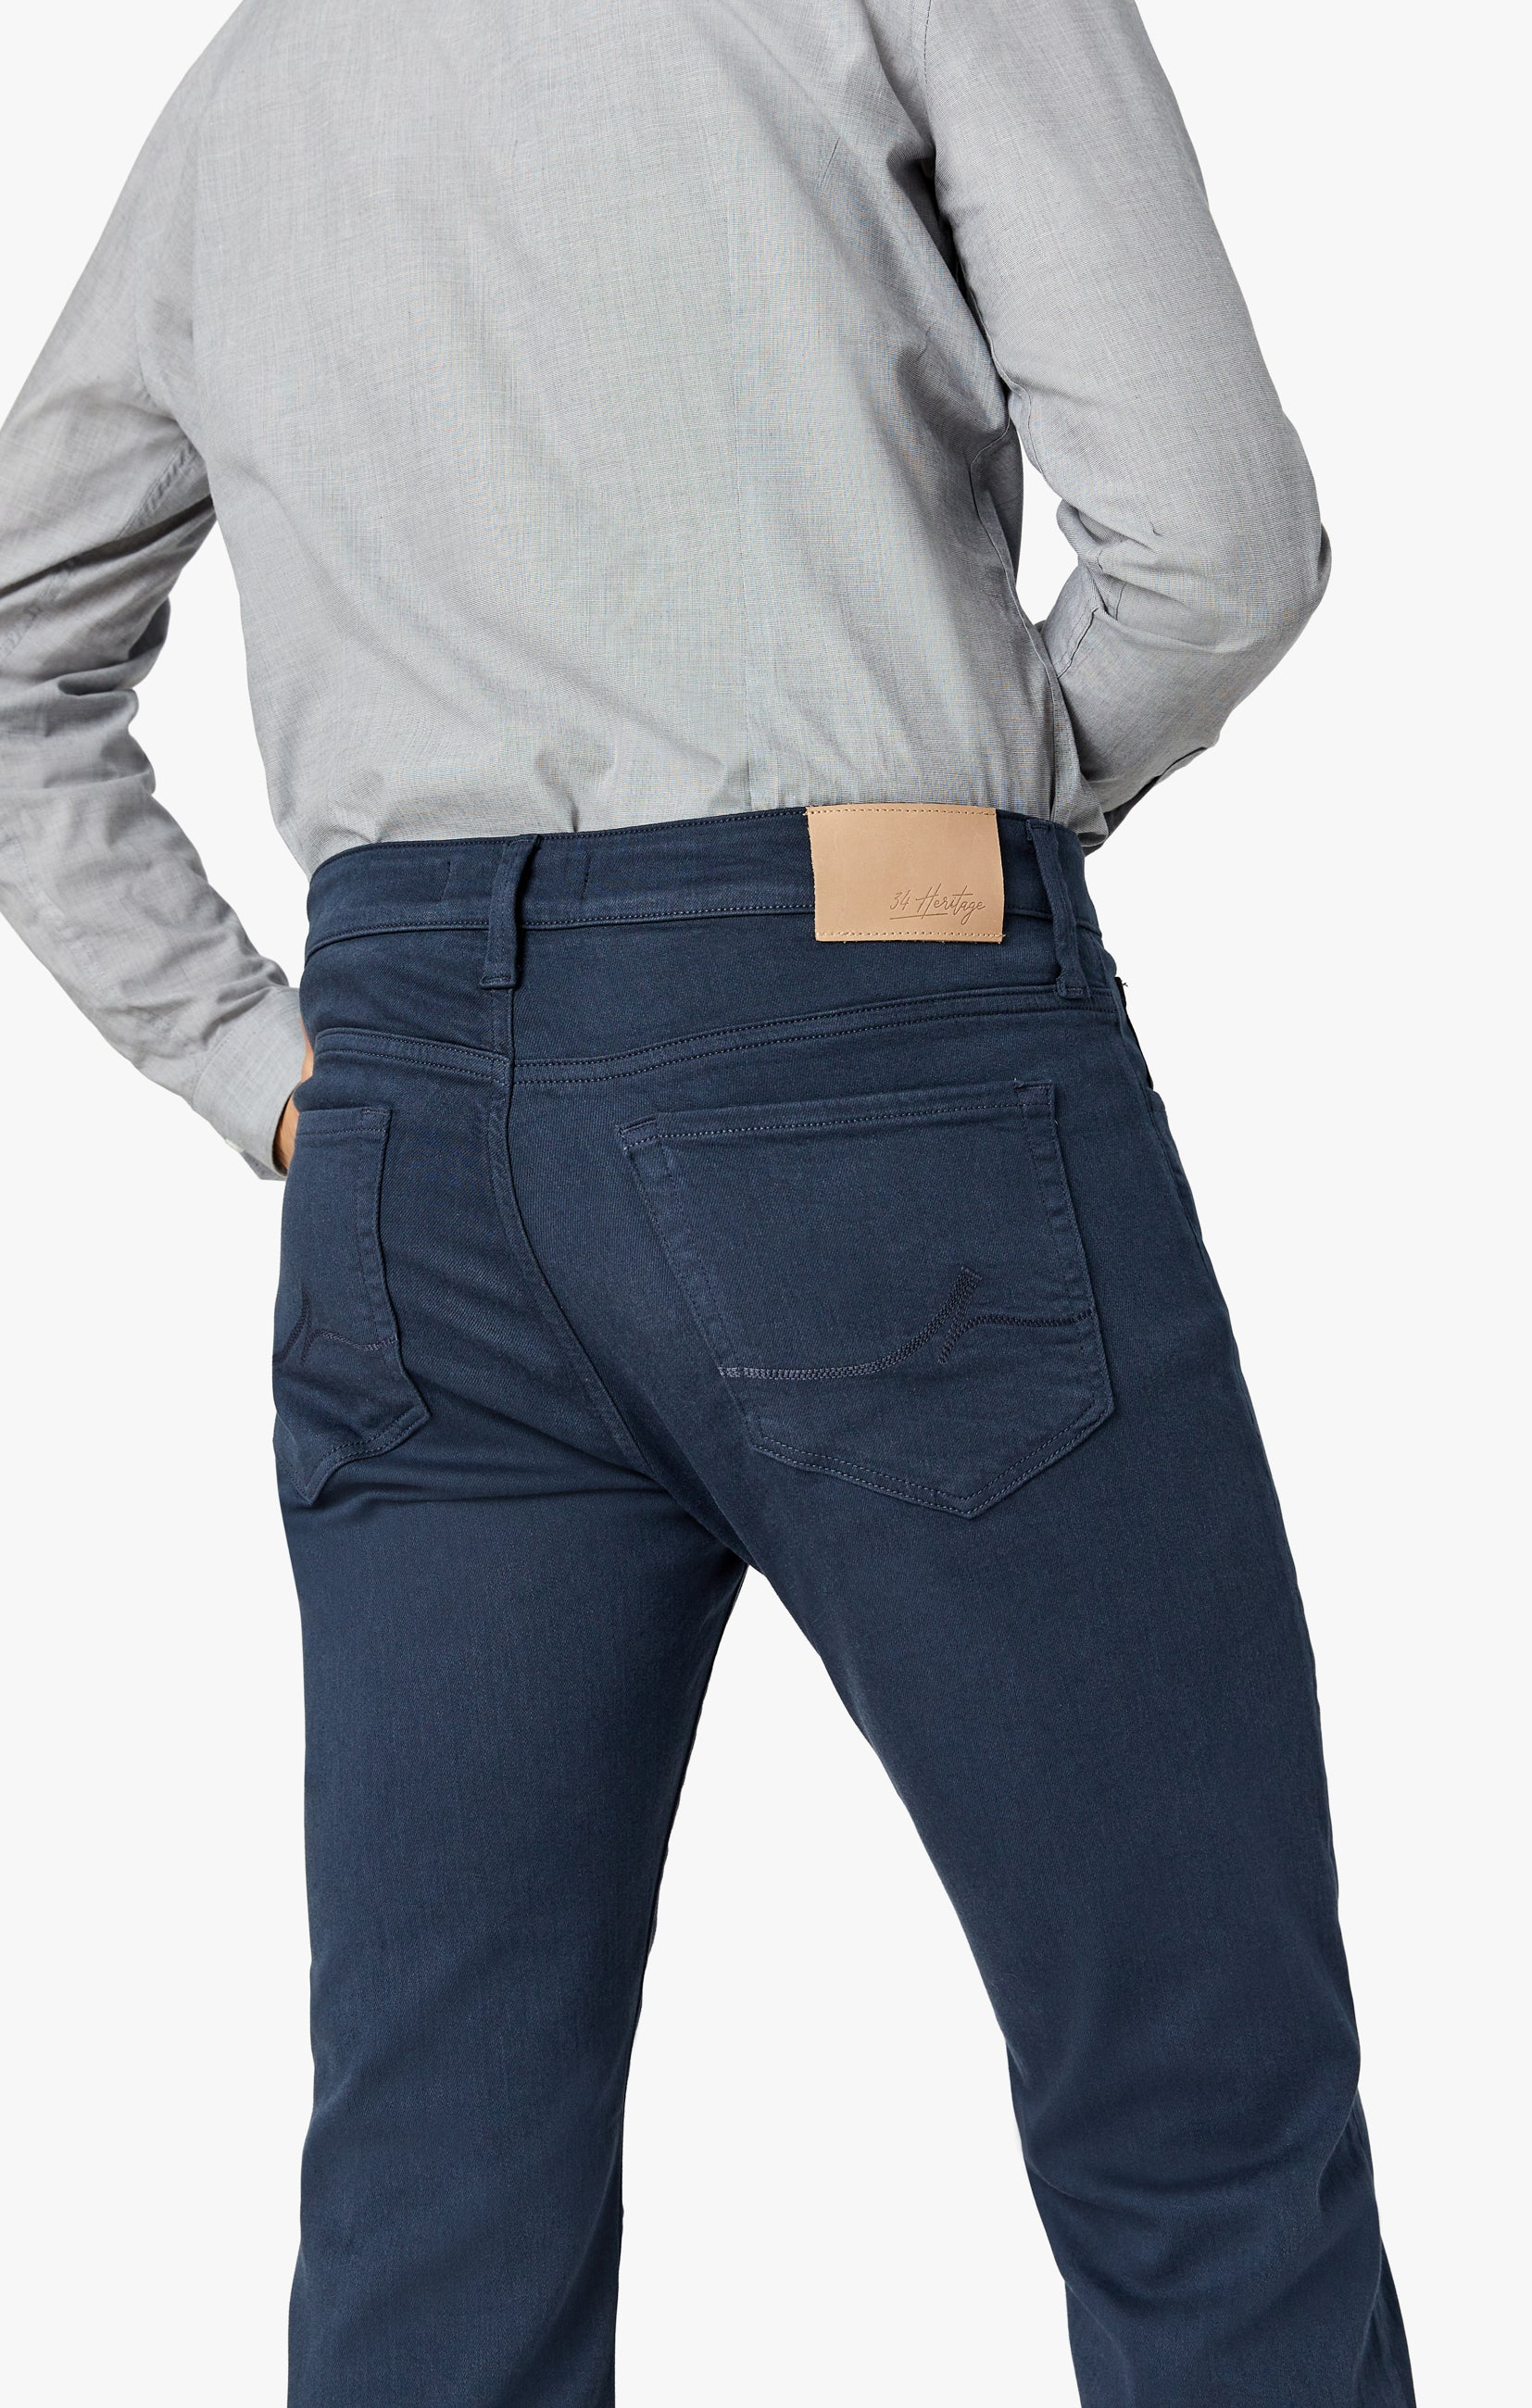 Charisma Relaxed Straight Pants In Dusty Navy Comfort Image 4